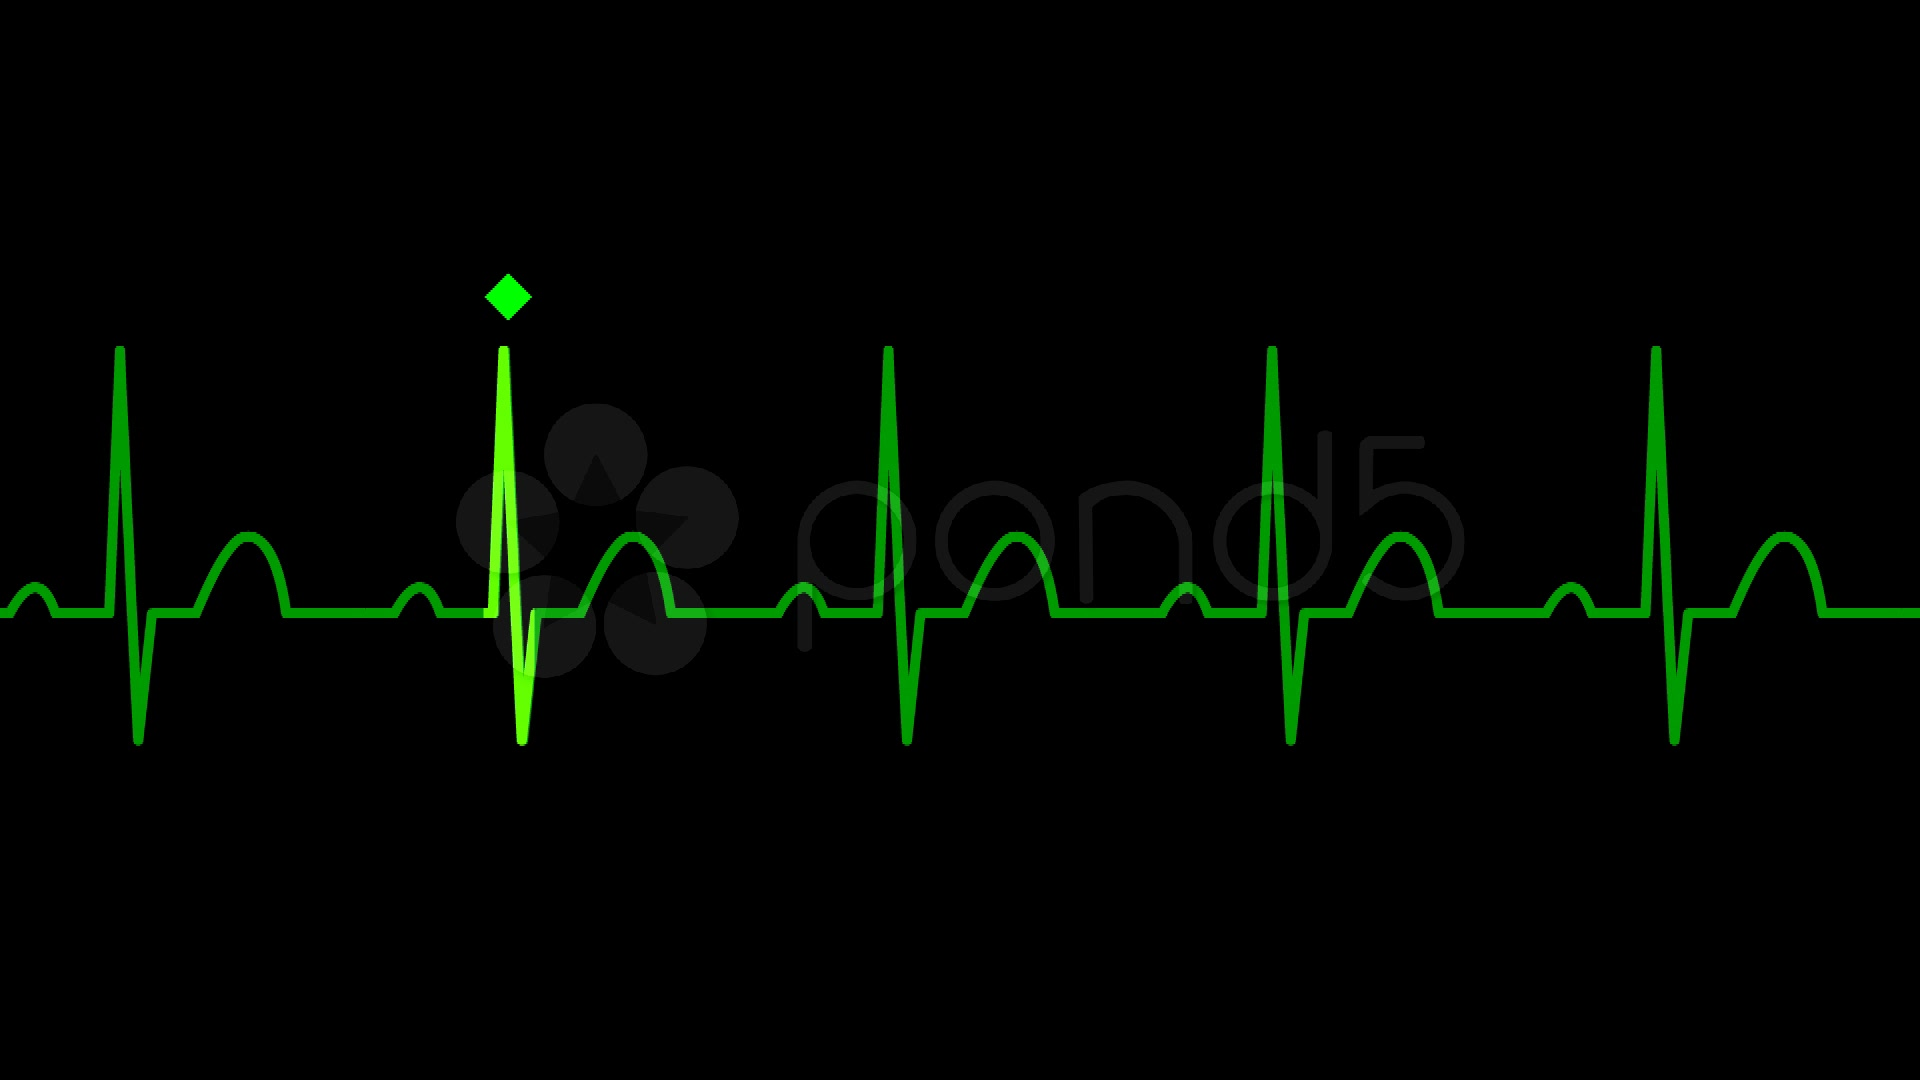 38] Cardiology Wallpaper on WallpaperSafari 1920x1080